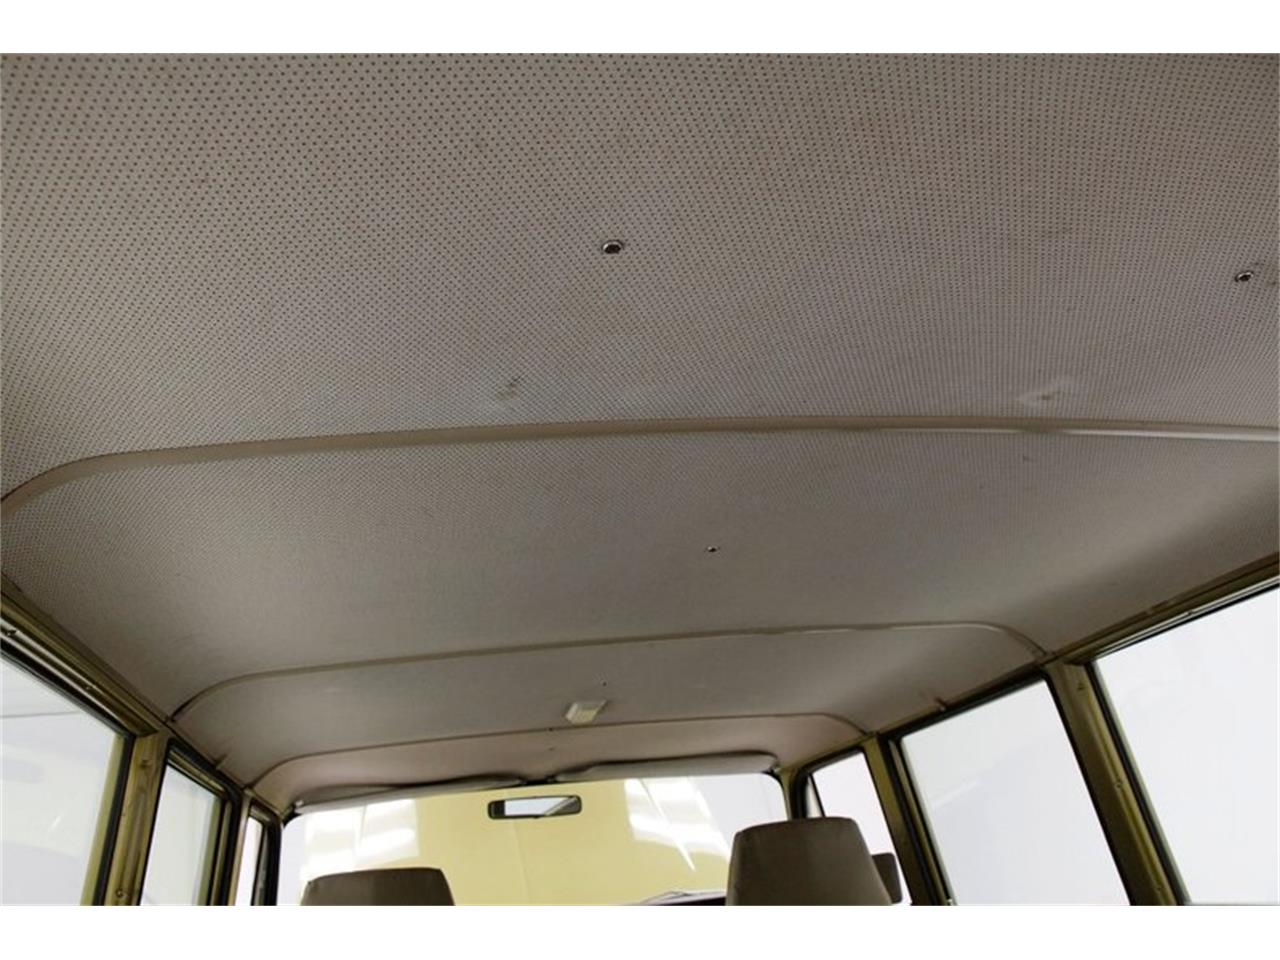 1975 International Travelall (CC-1245155) for sale in Morgantown, Pennsylvania